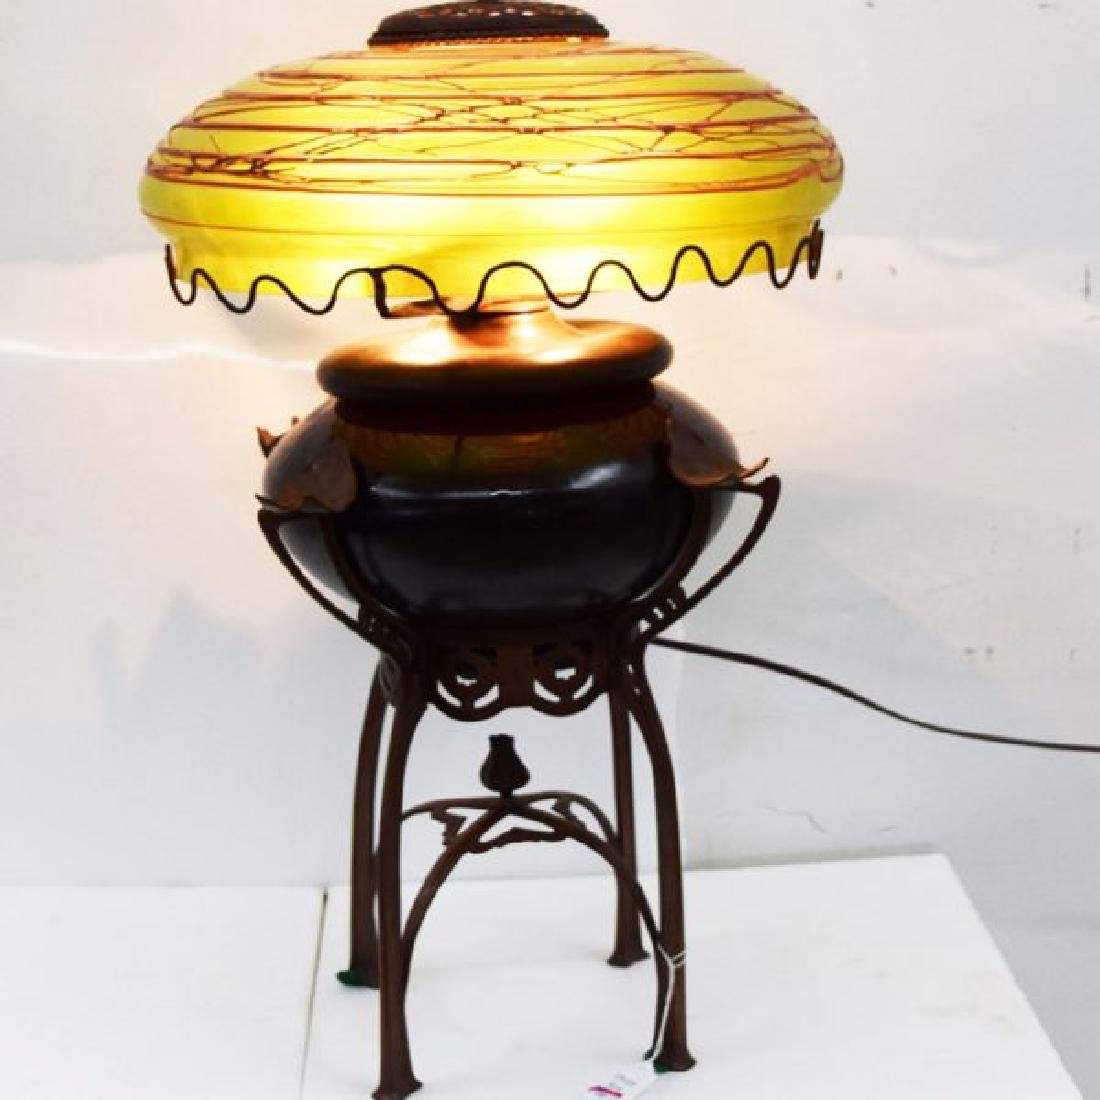 Austrian Iridescent Glass and Cast Metal Table Lamp, - 6